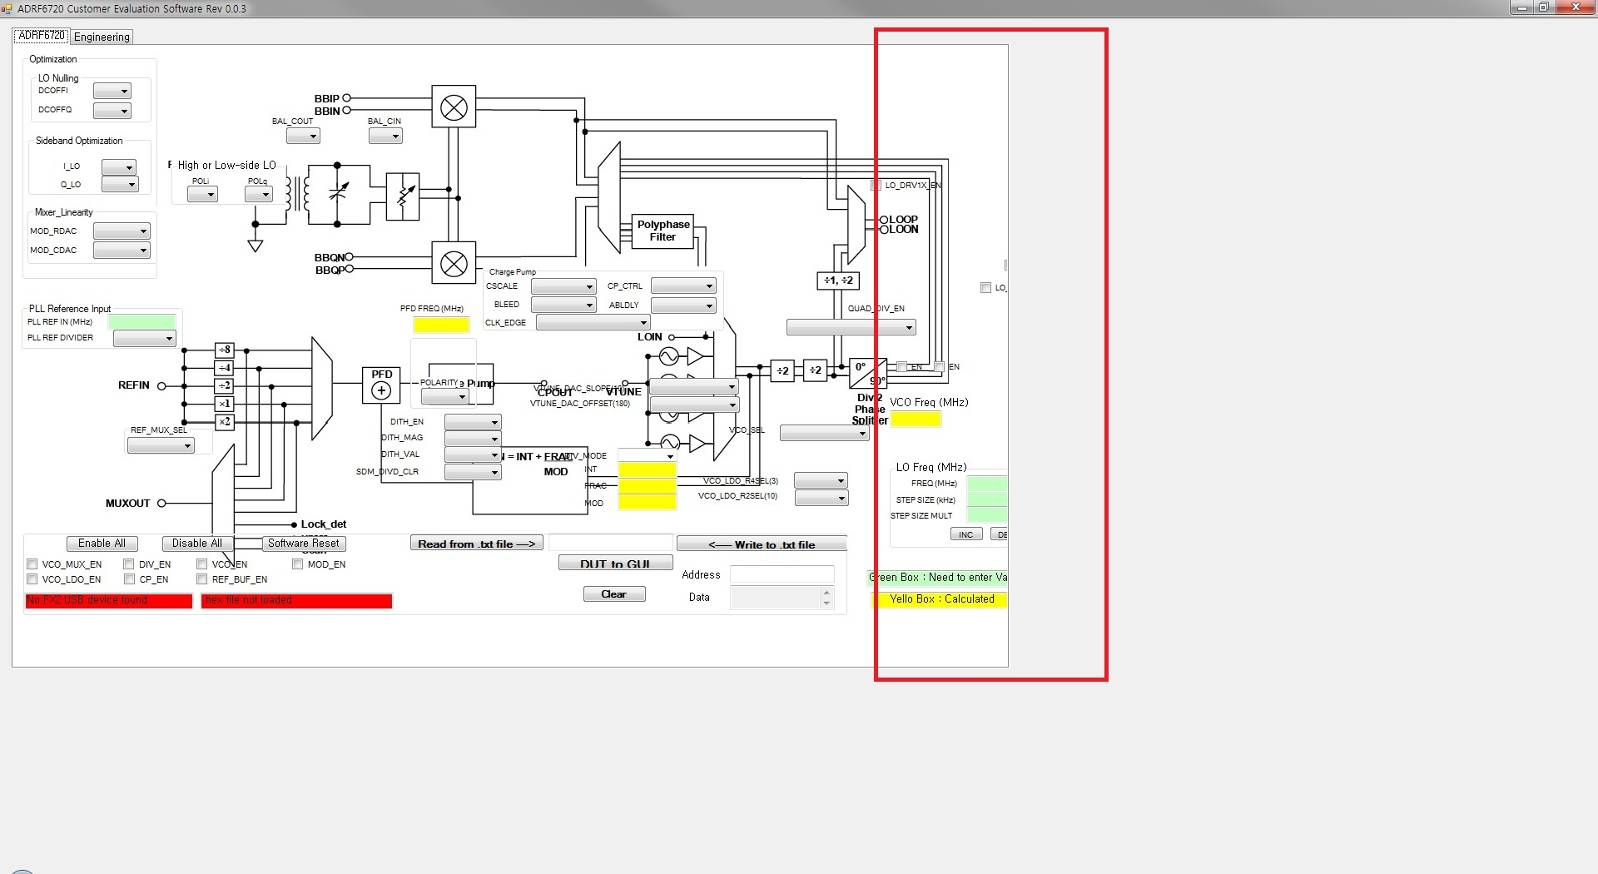 hight resolution of issue at a block diagram display in adrf6720 adrf6820 evaluation software